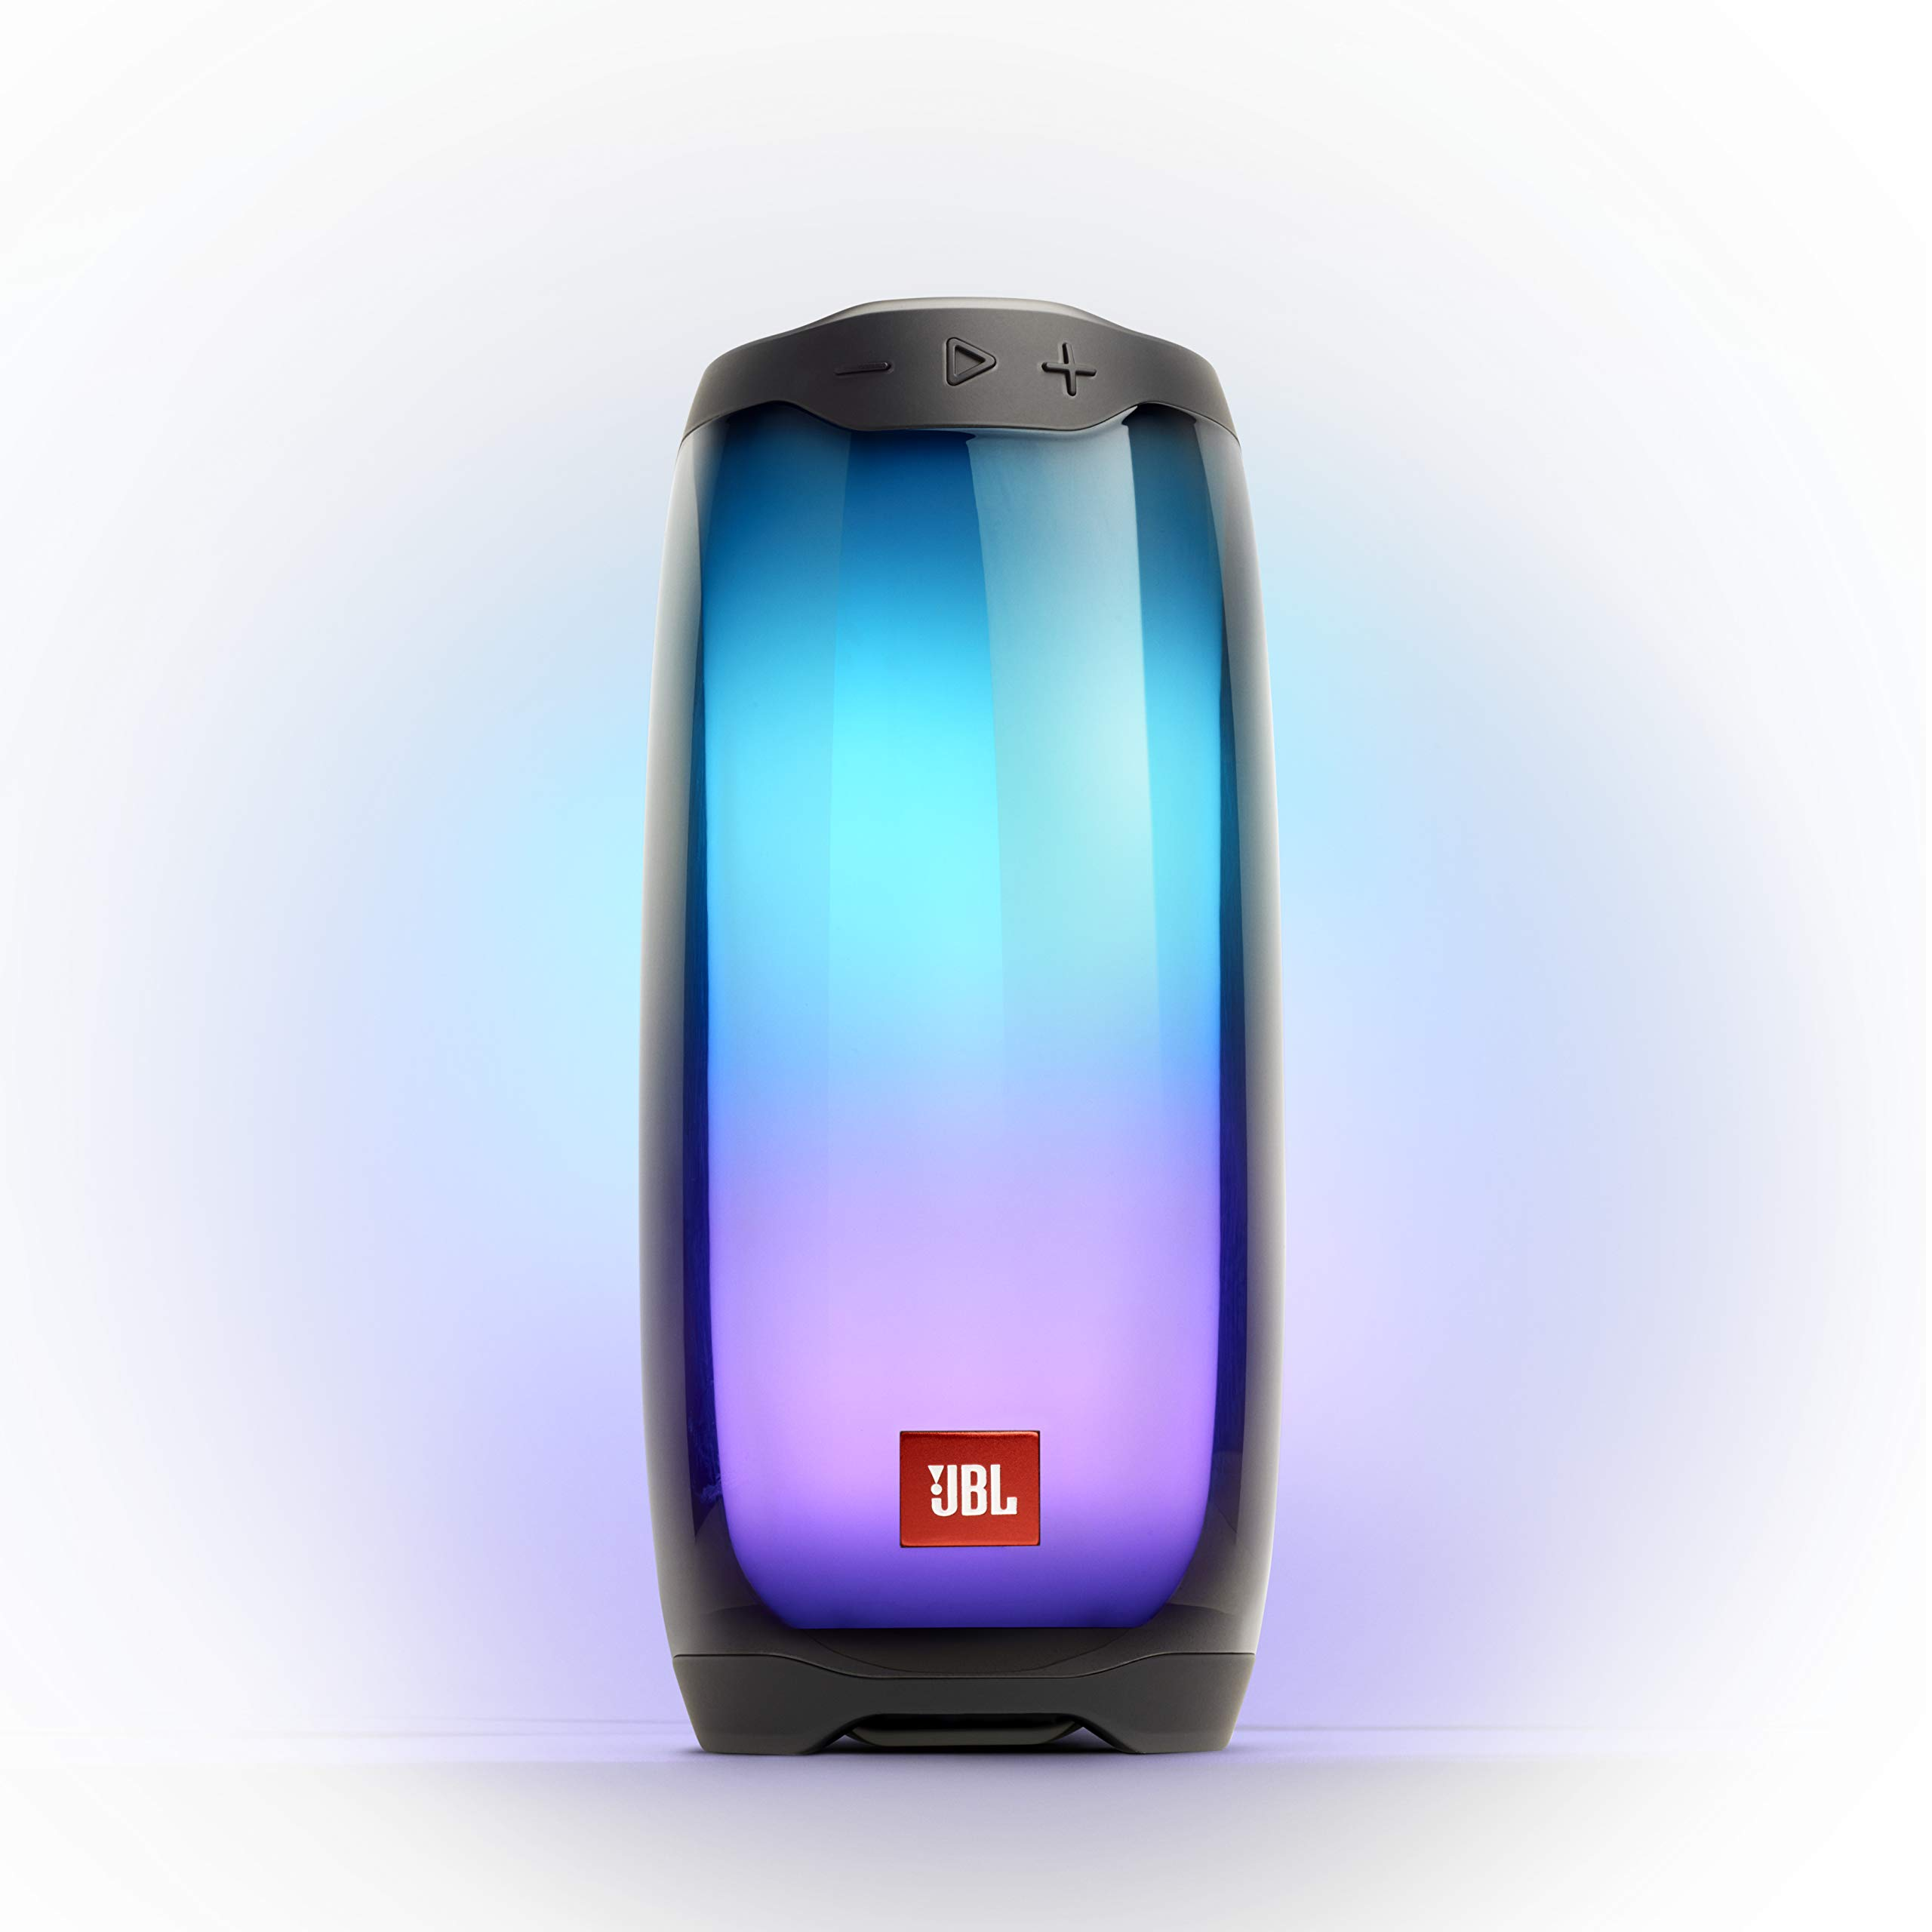 JBL 펄스4 포터블 방수 스피커 - 블랙 JBL Pulse 4 Waterproof Portable Bluetooth Speaker with Light Show - Black